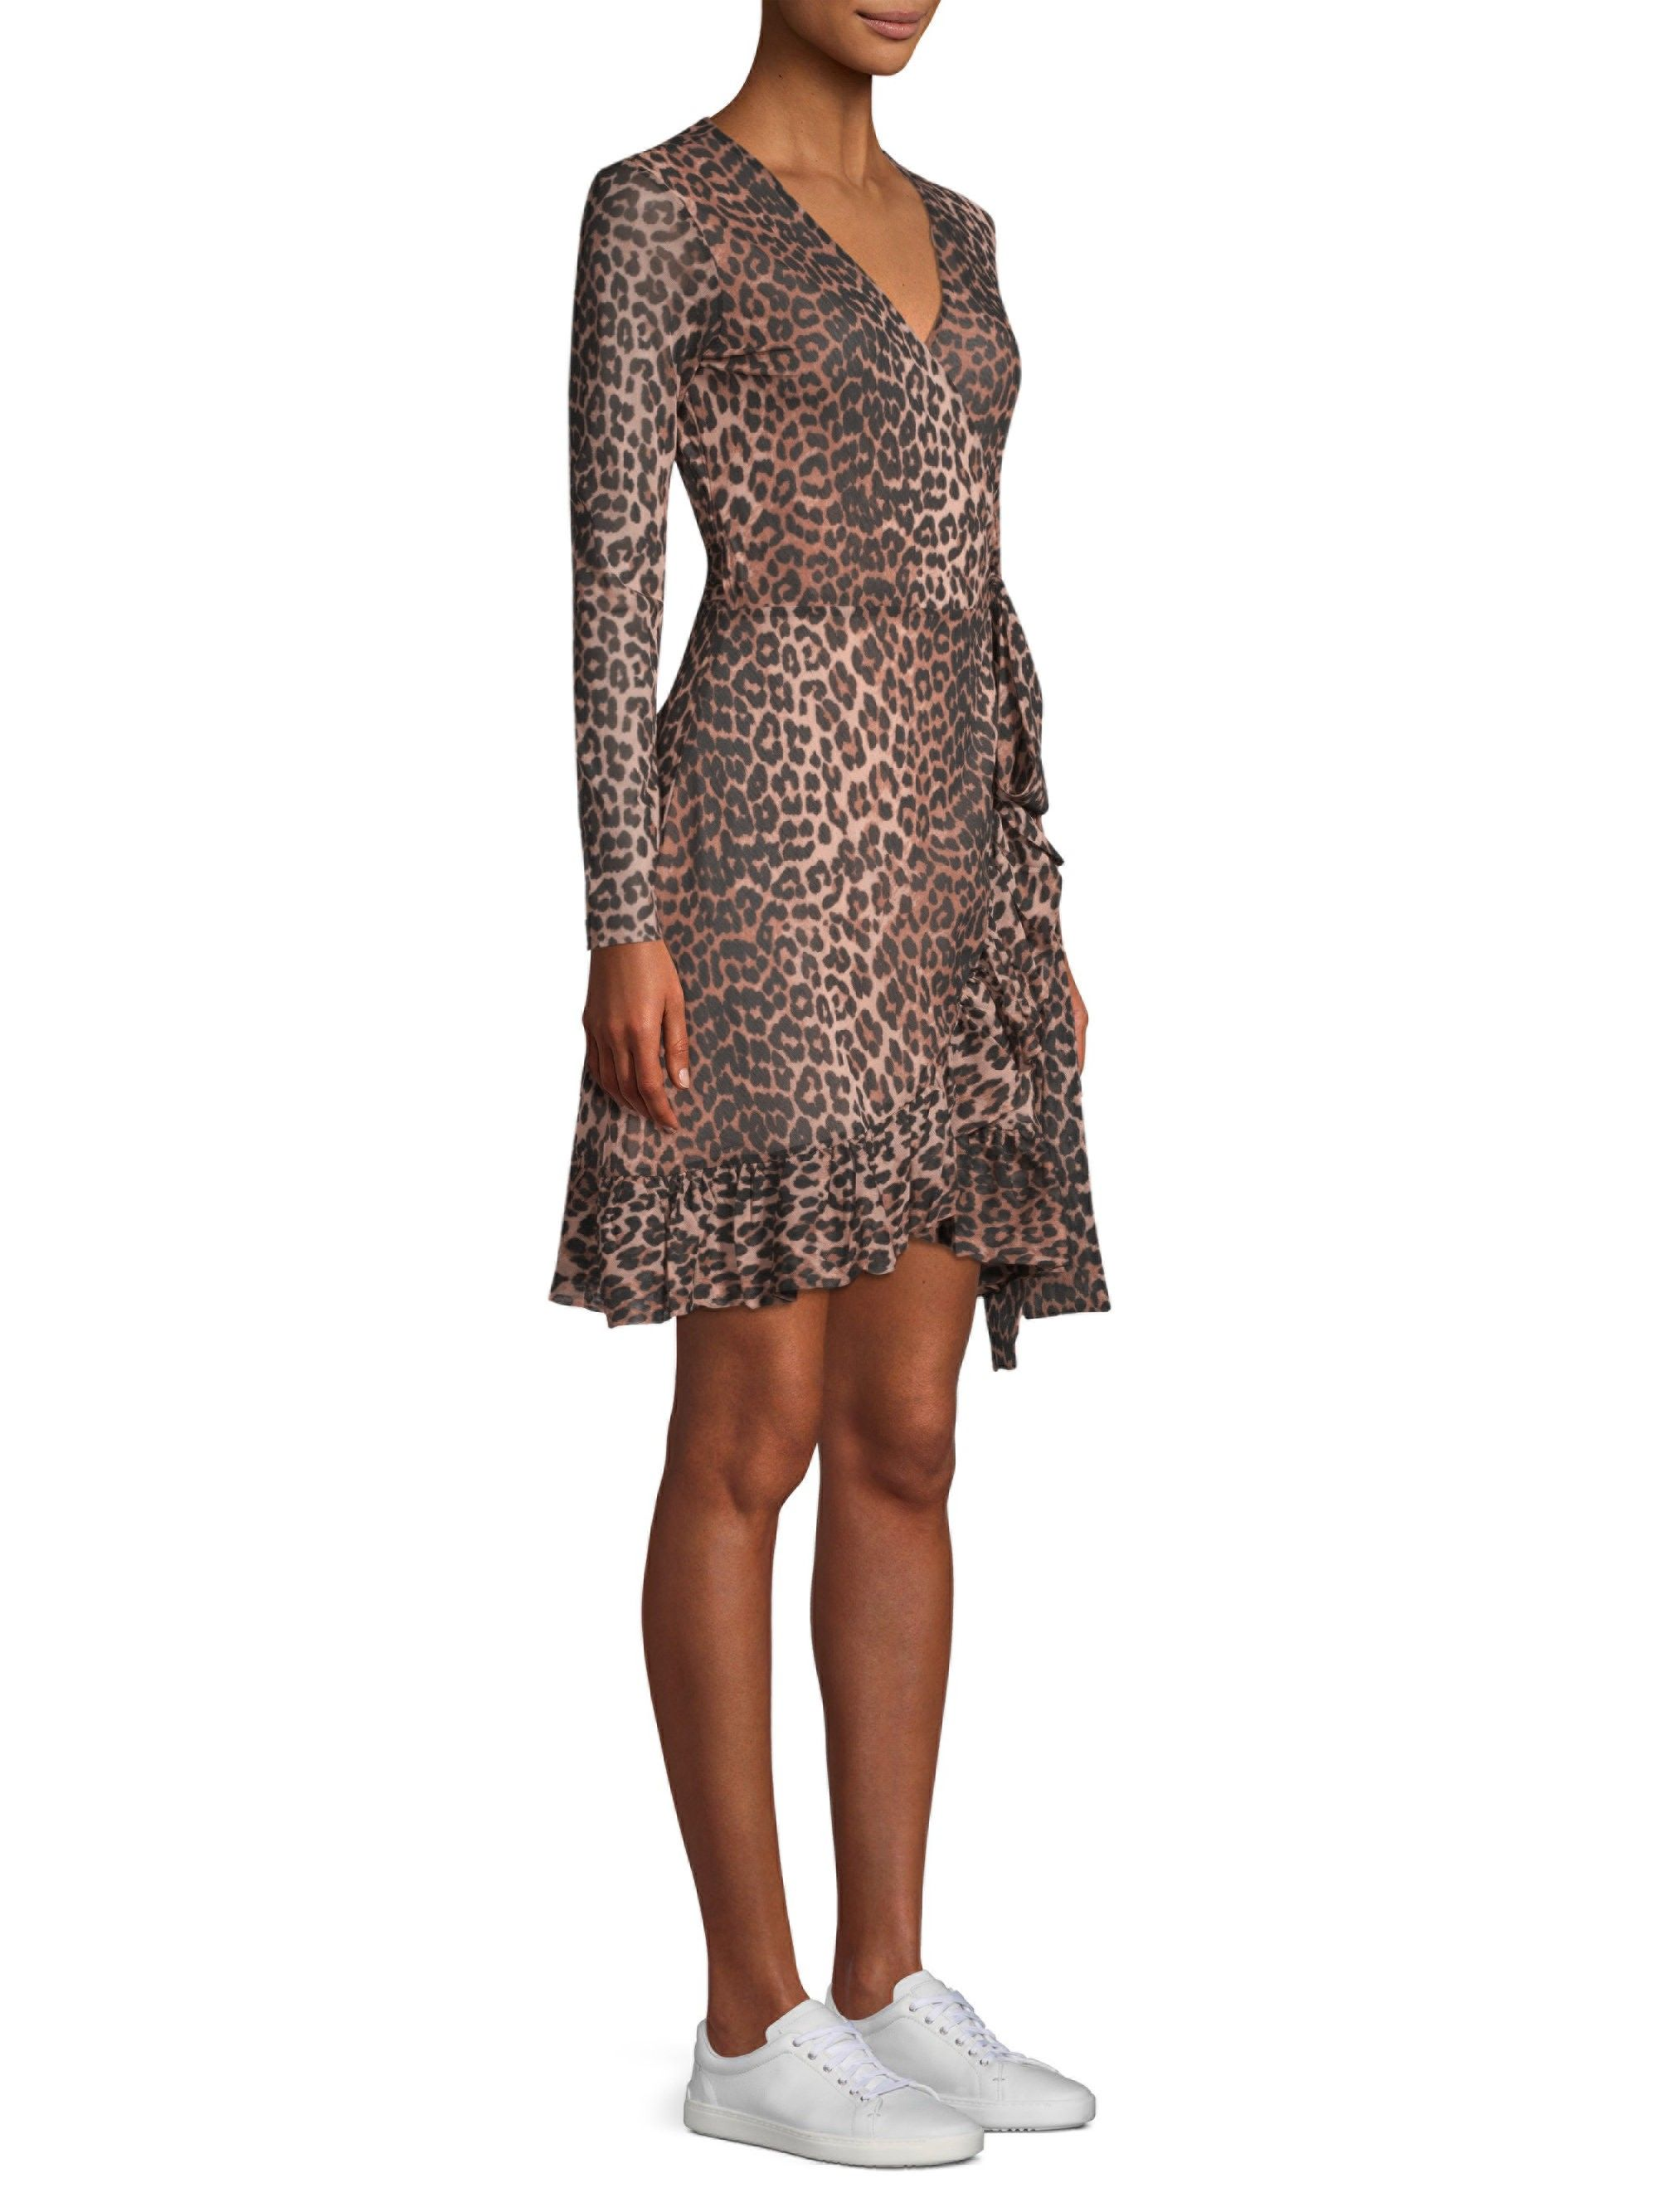 837951c0 Tilden Mesh Leopard Print Dress by Ganni | Products | Wrap dress ...